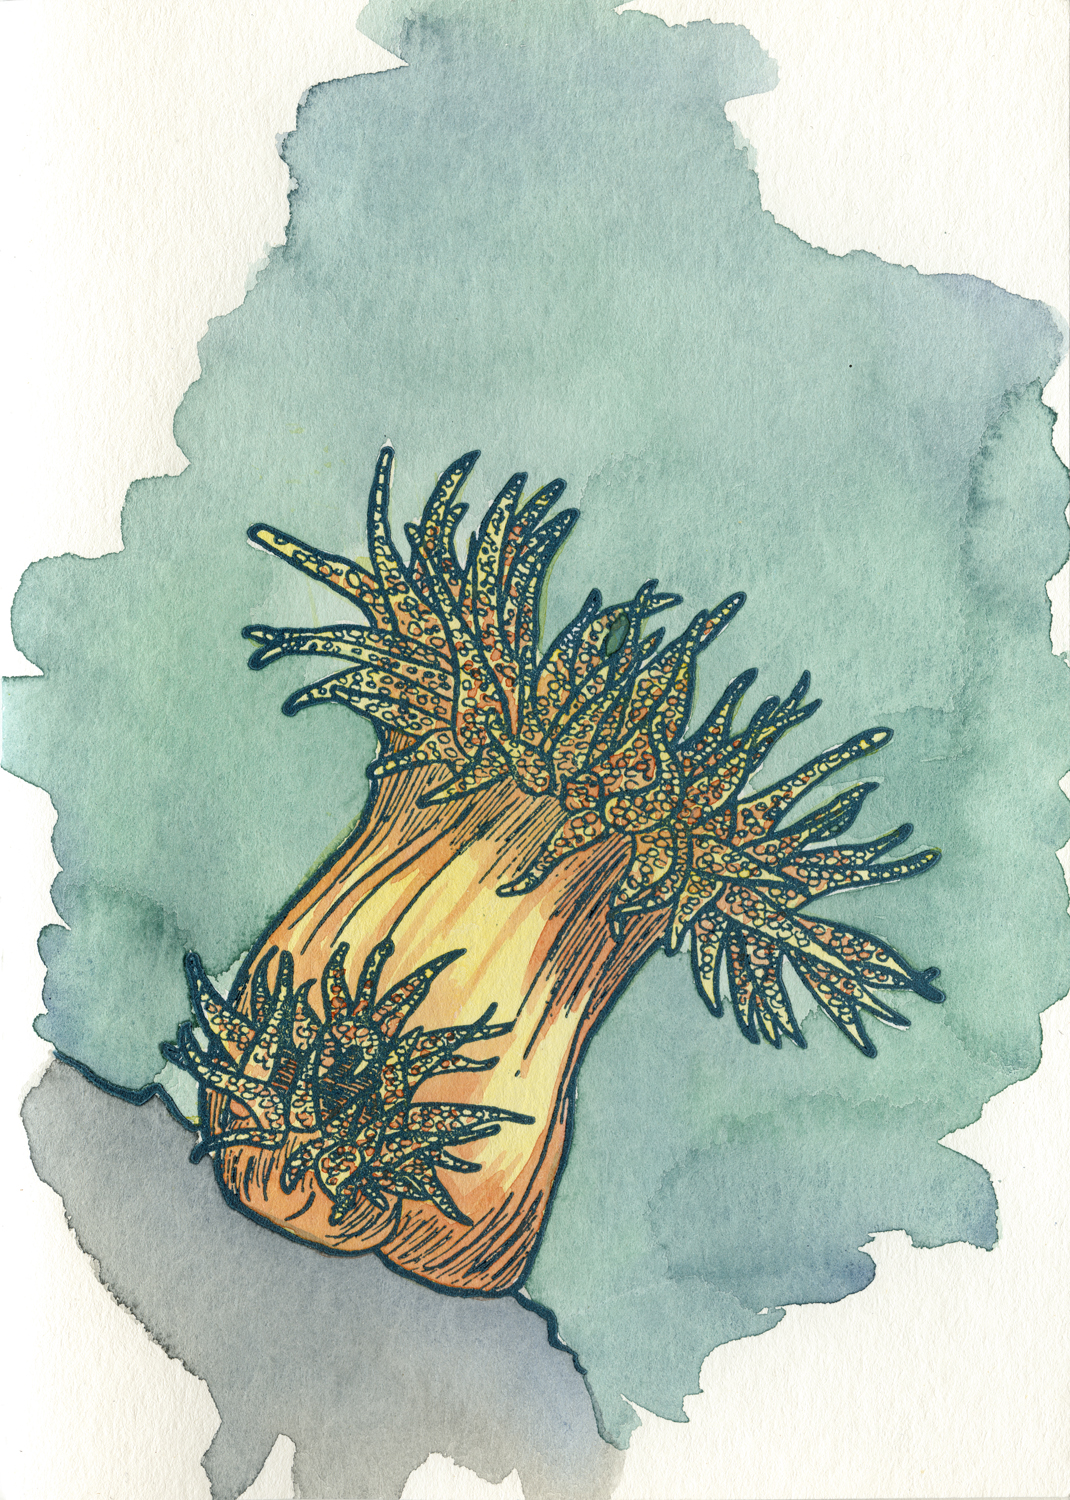 Sea Anemone Drawing Sea anemone above, sea jelly